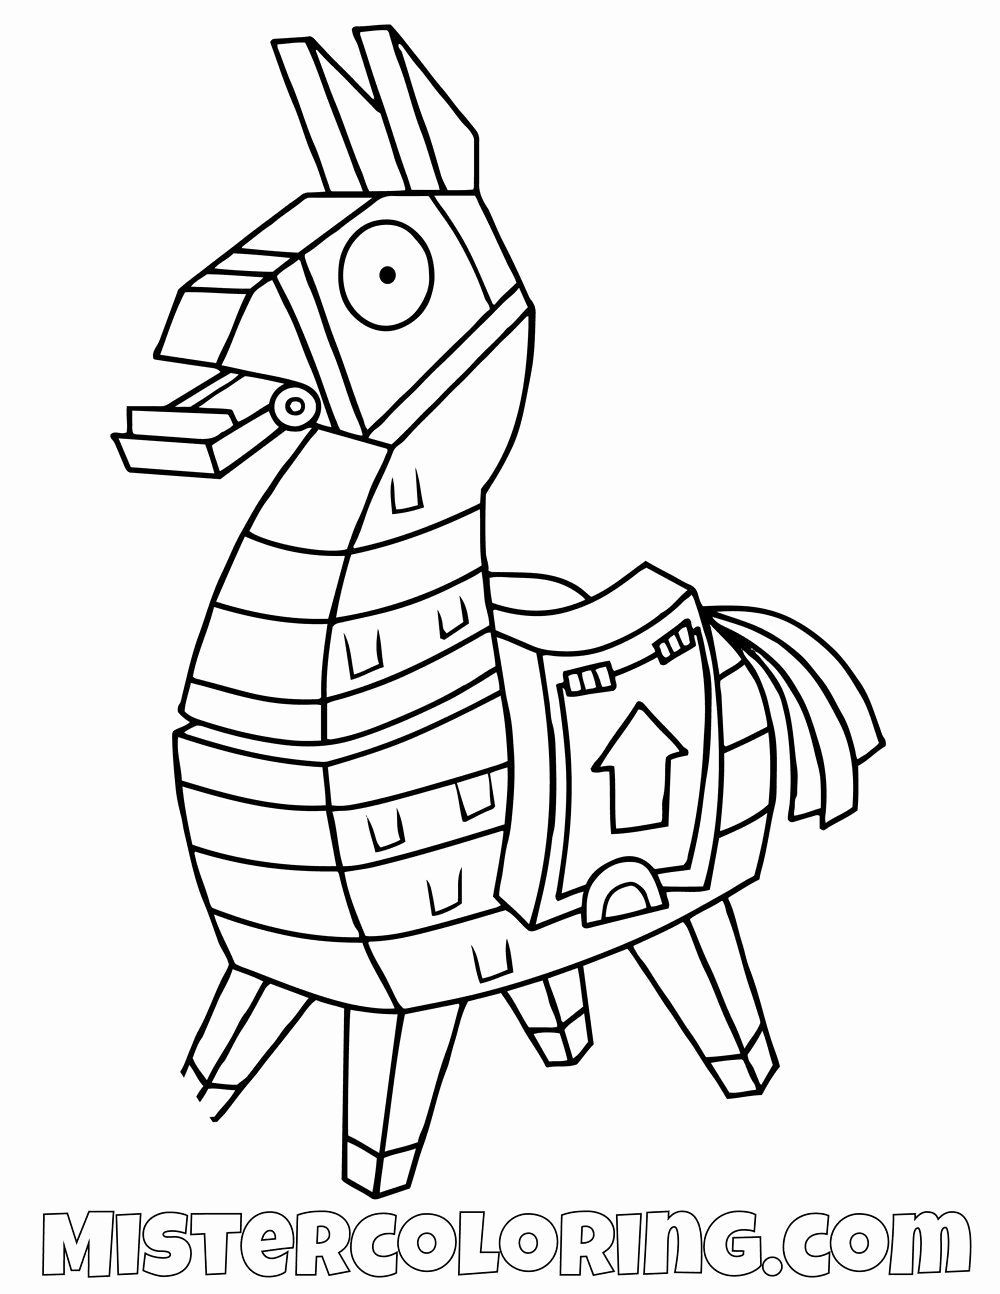 Fortnite Llama Coloring Page Beautiful Free Llama Fortnite Coloring Page For Kids In 2019 In 2020 Cool Coloring Pages Toy Story Coloring Pages Coloring Pages For Boys